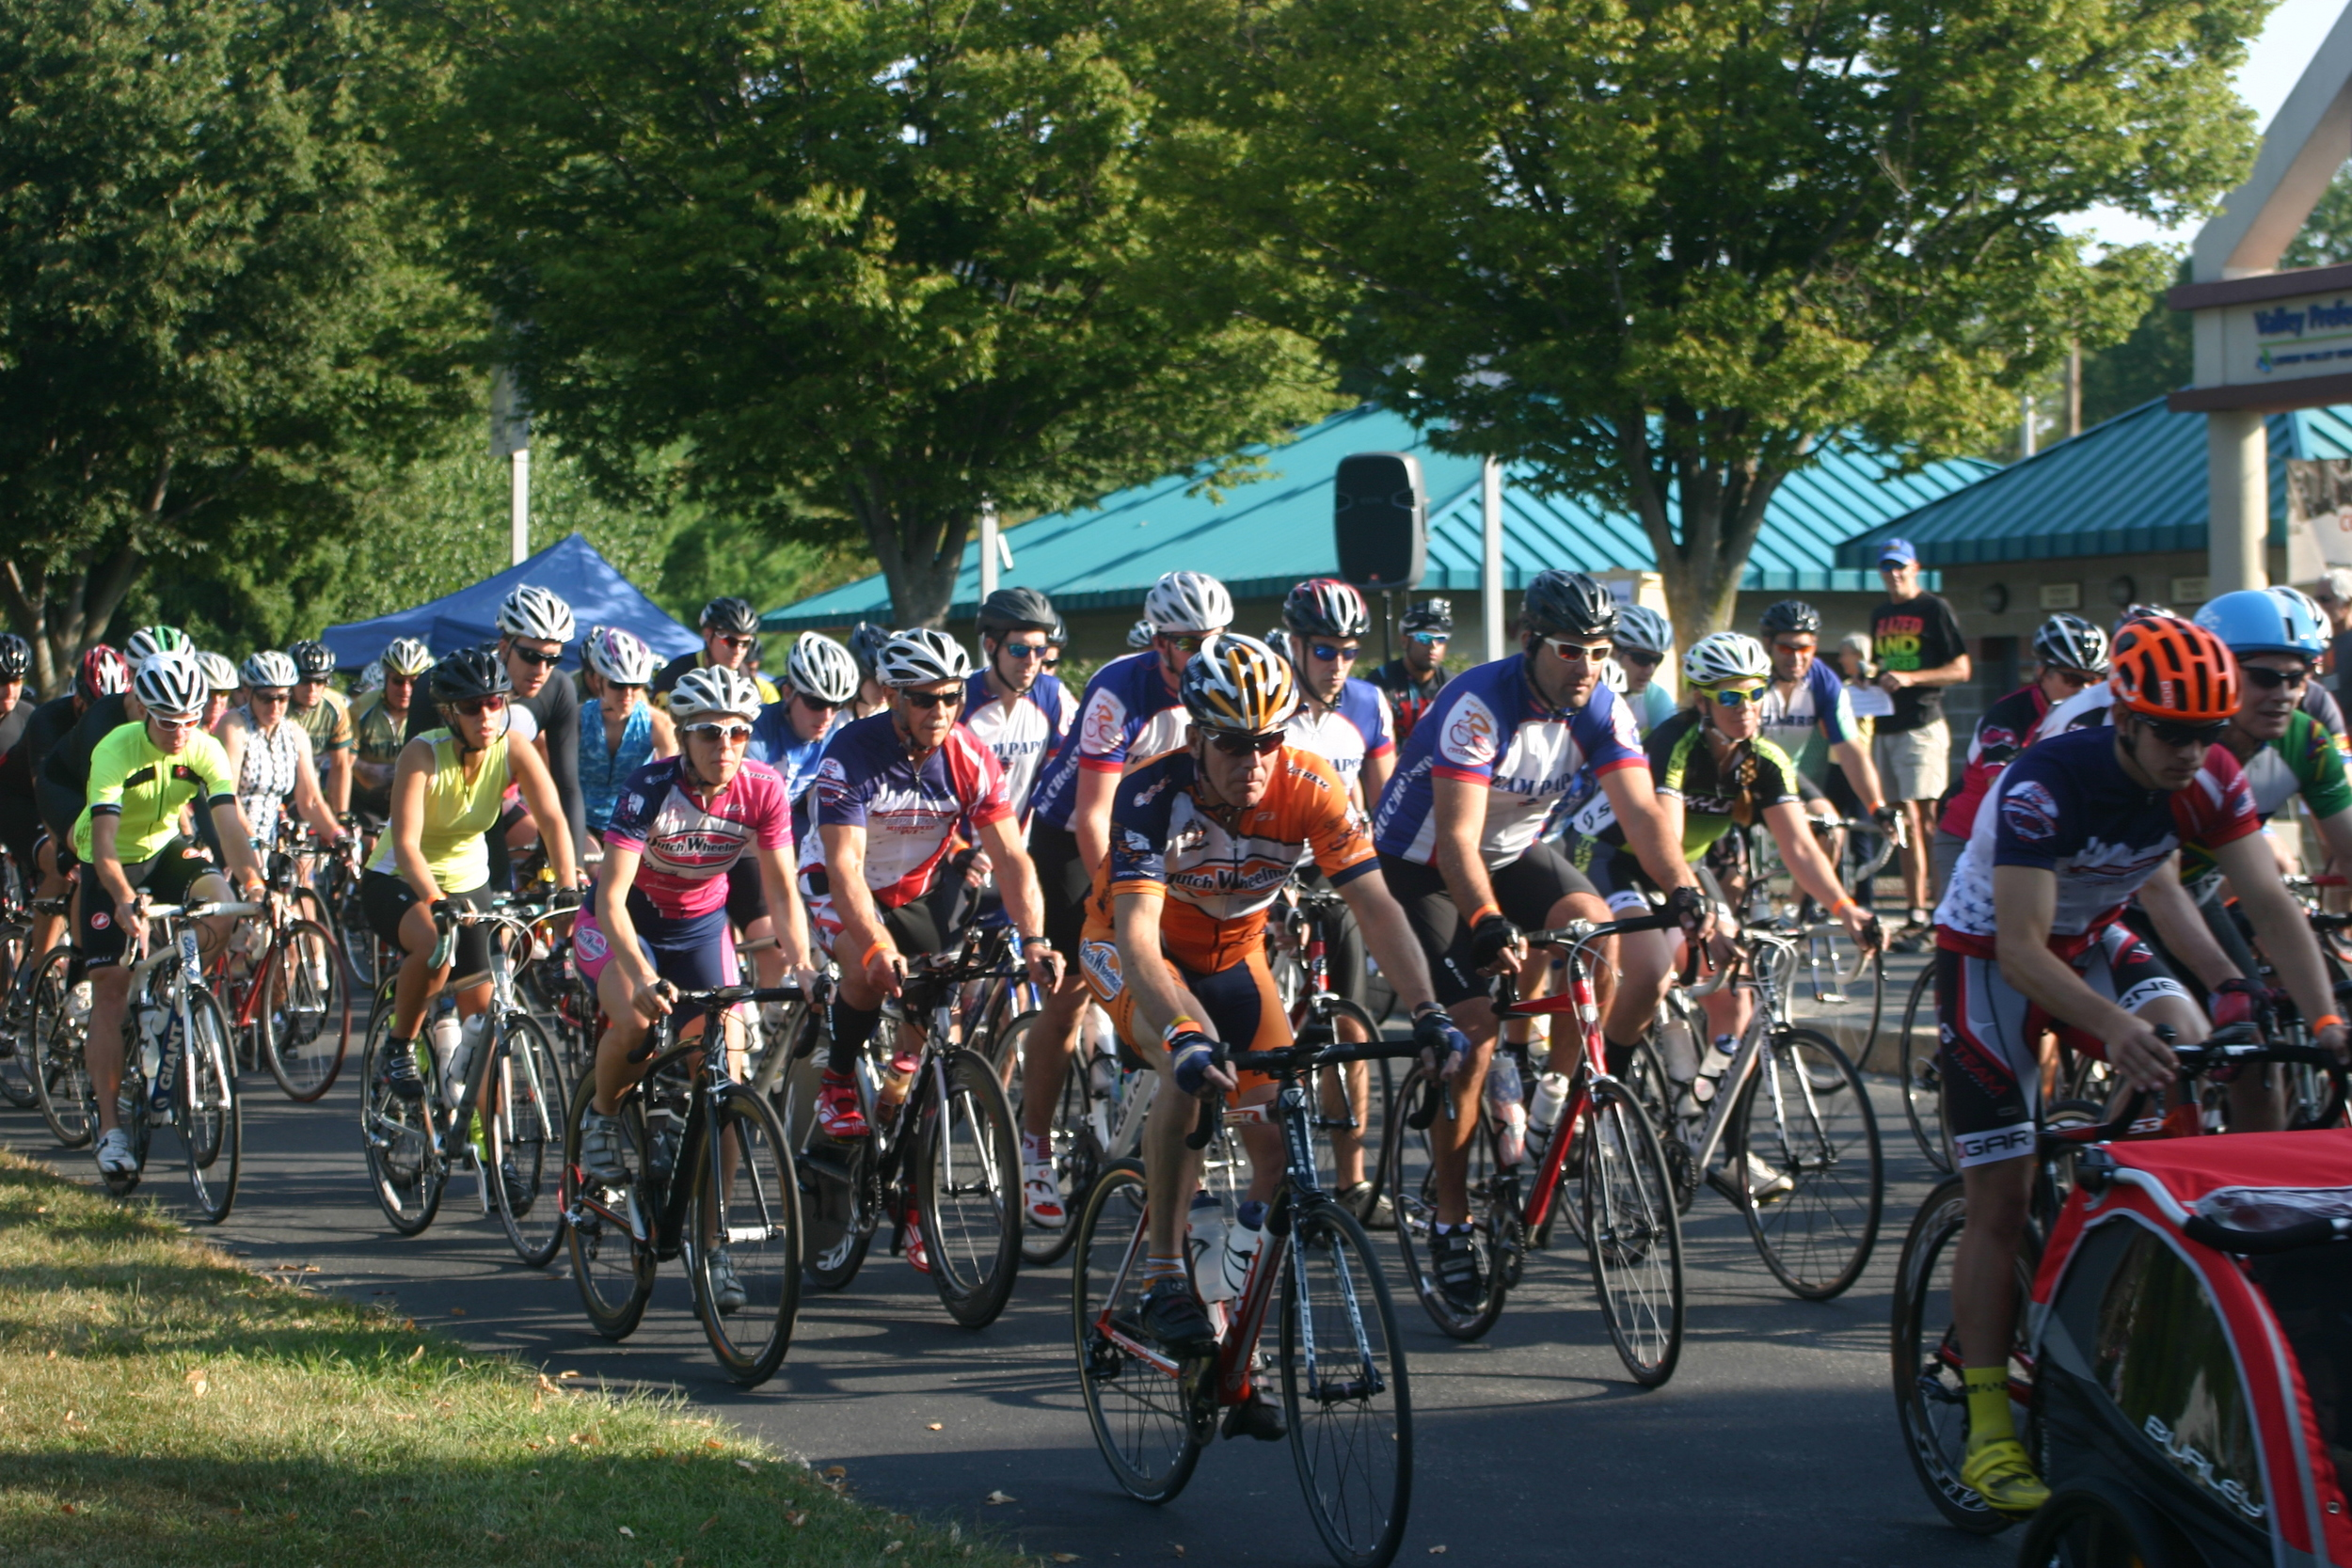 The start was a full-gas affair straight from the gun. Photo courtesy Chuck Rudy.